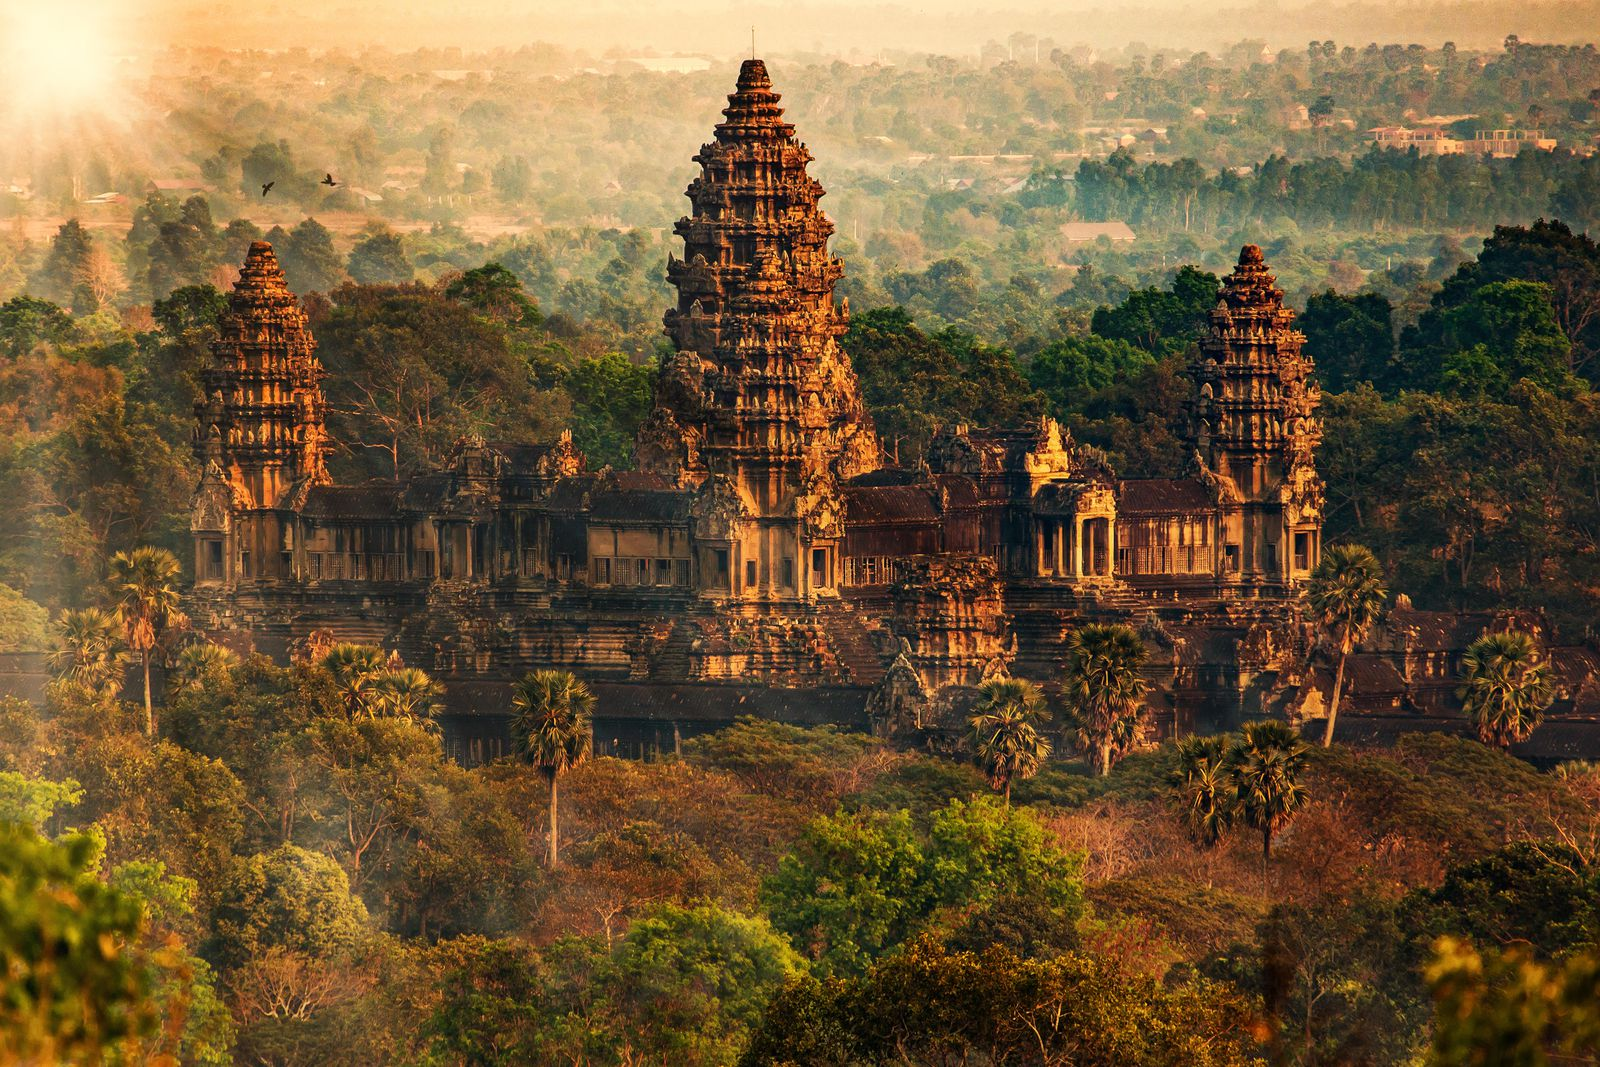 Angkor Wat May Owe Its Existence to an Engineering Catastrophe